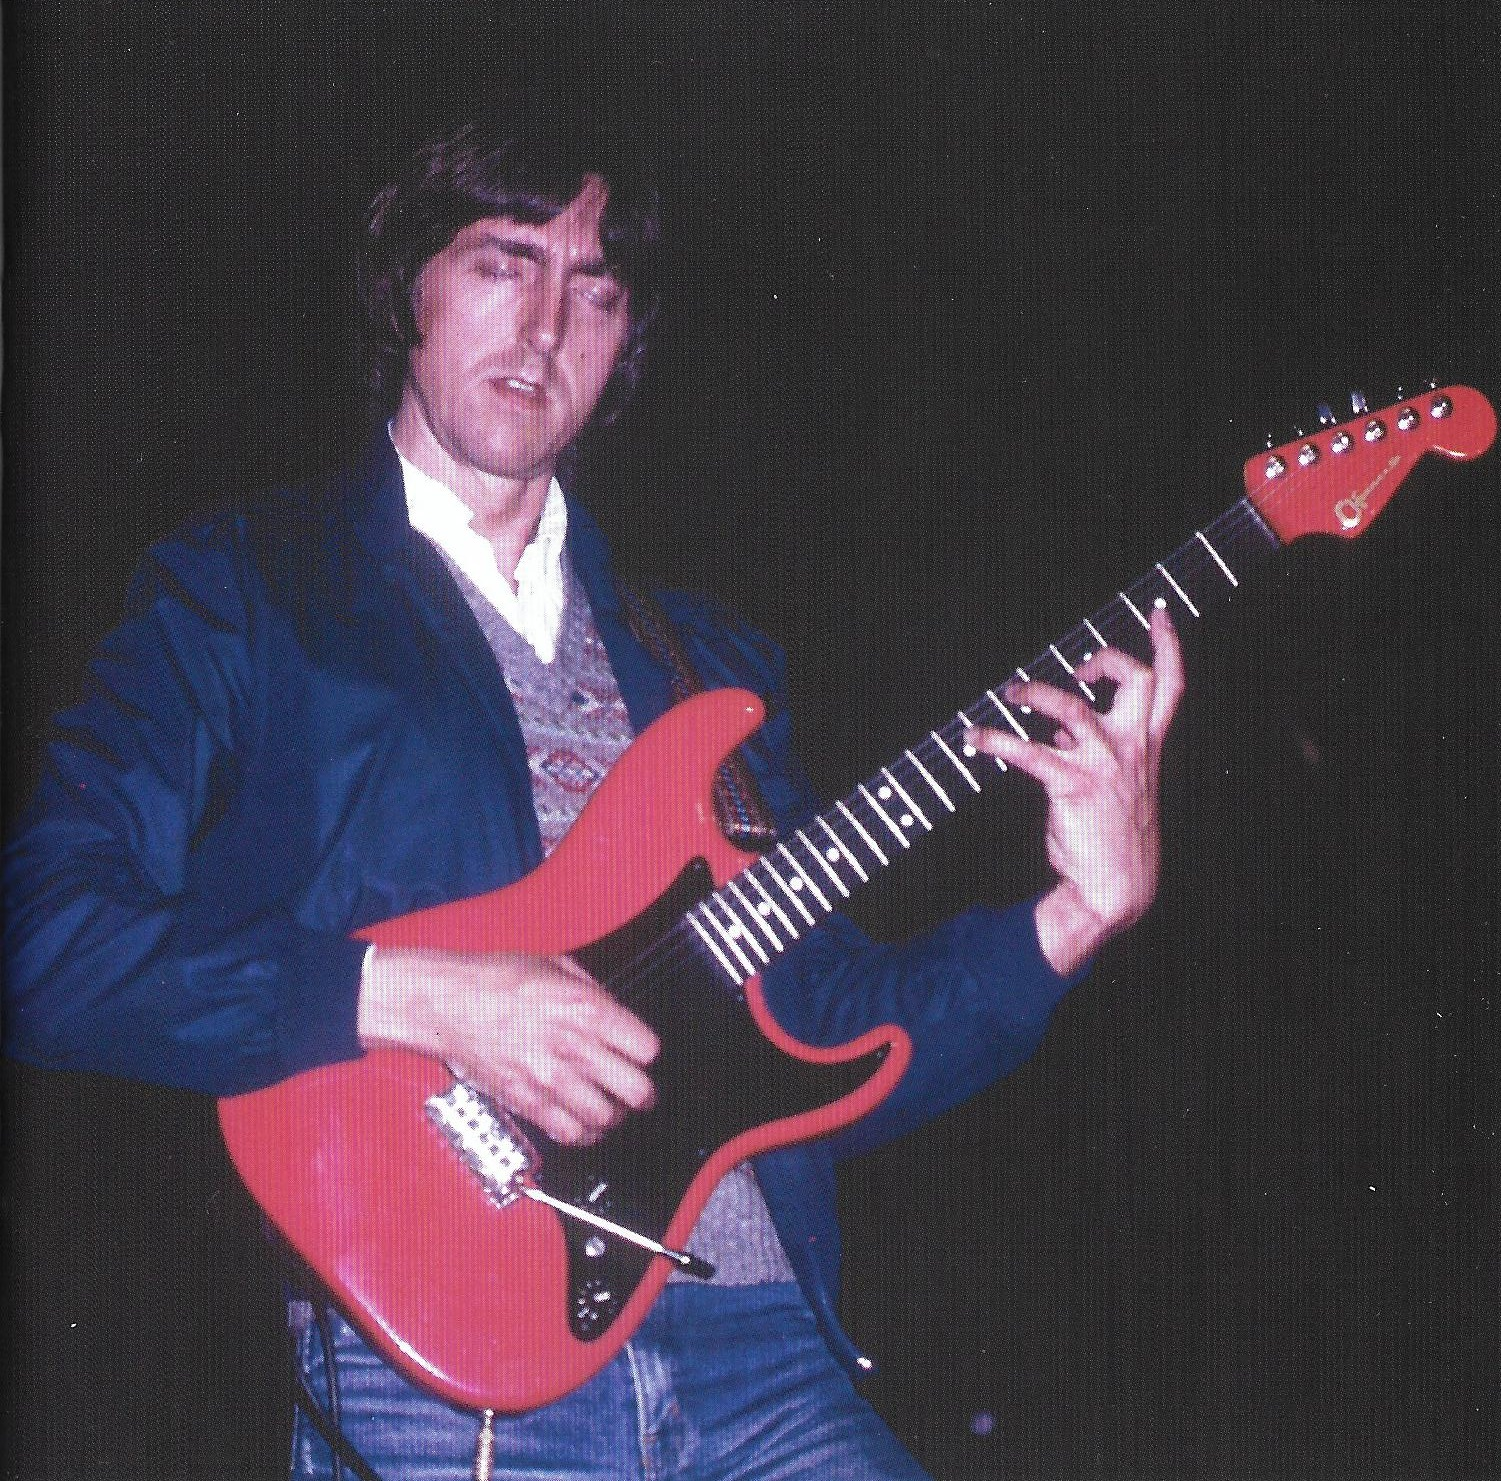 Allan Holdsworth Jazz Rock Fusion Guitar R I P Allan Holdsworth